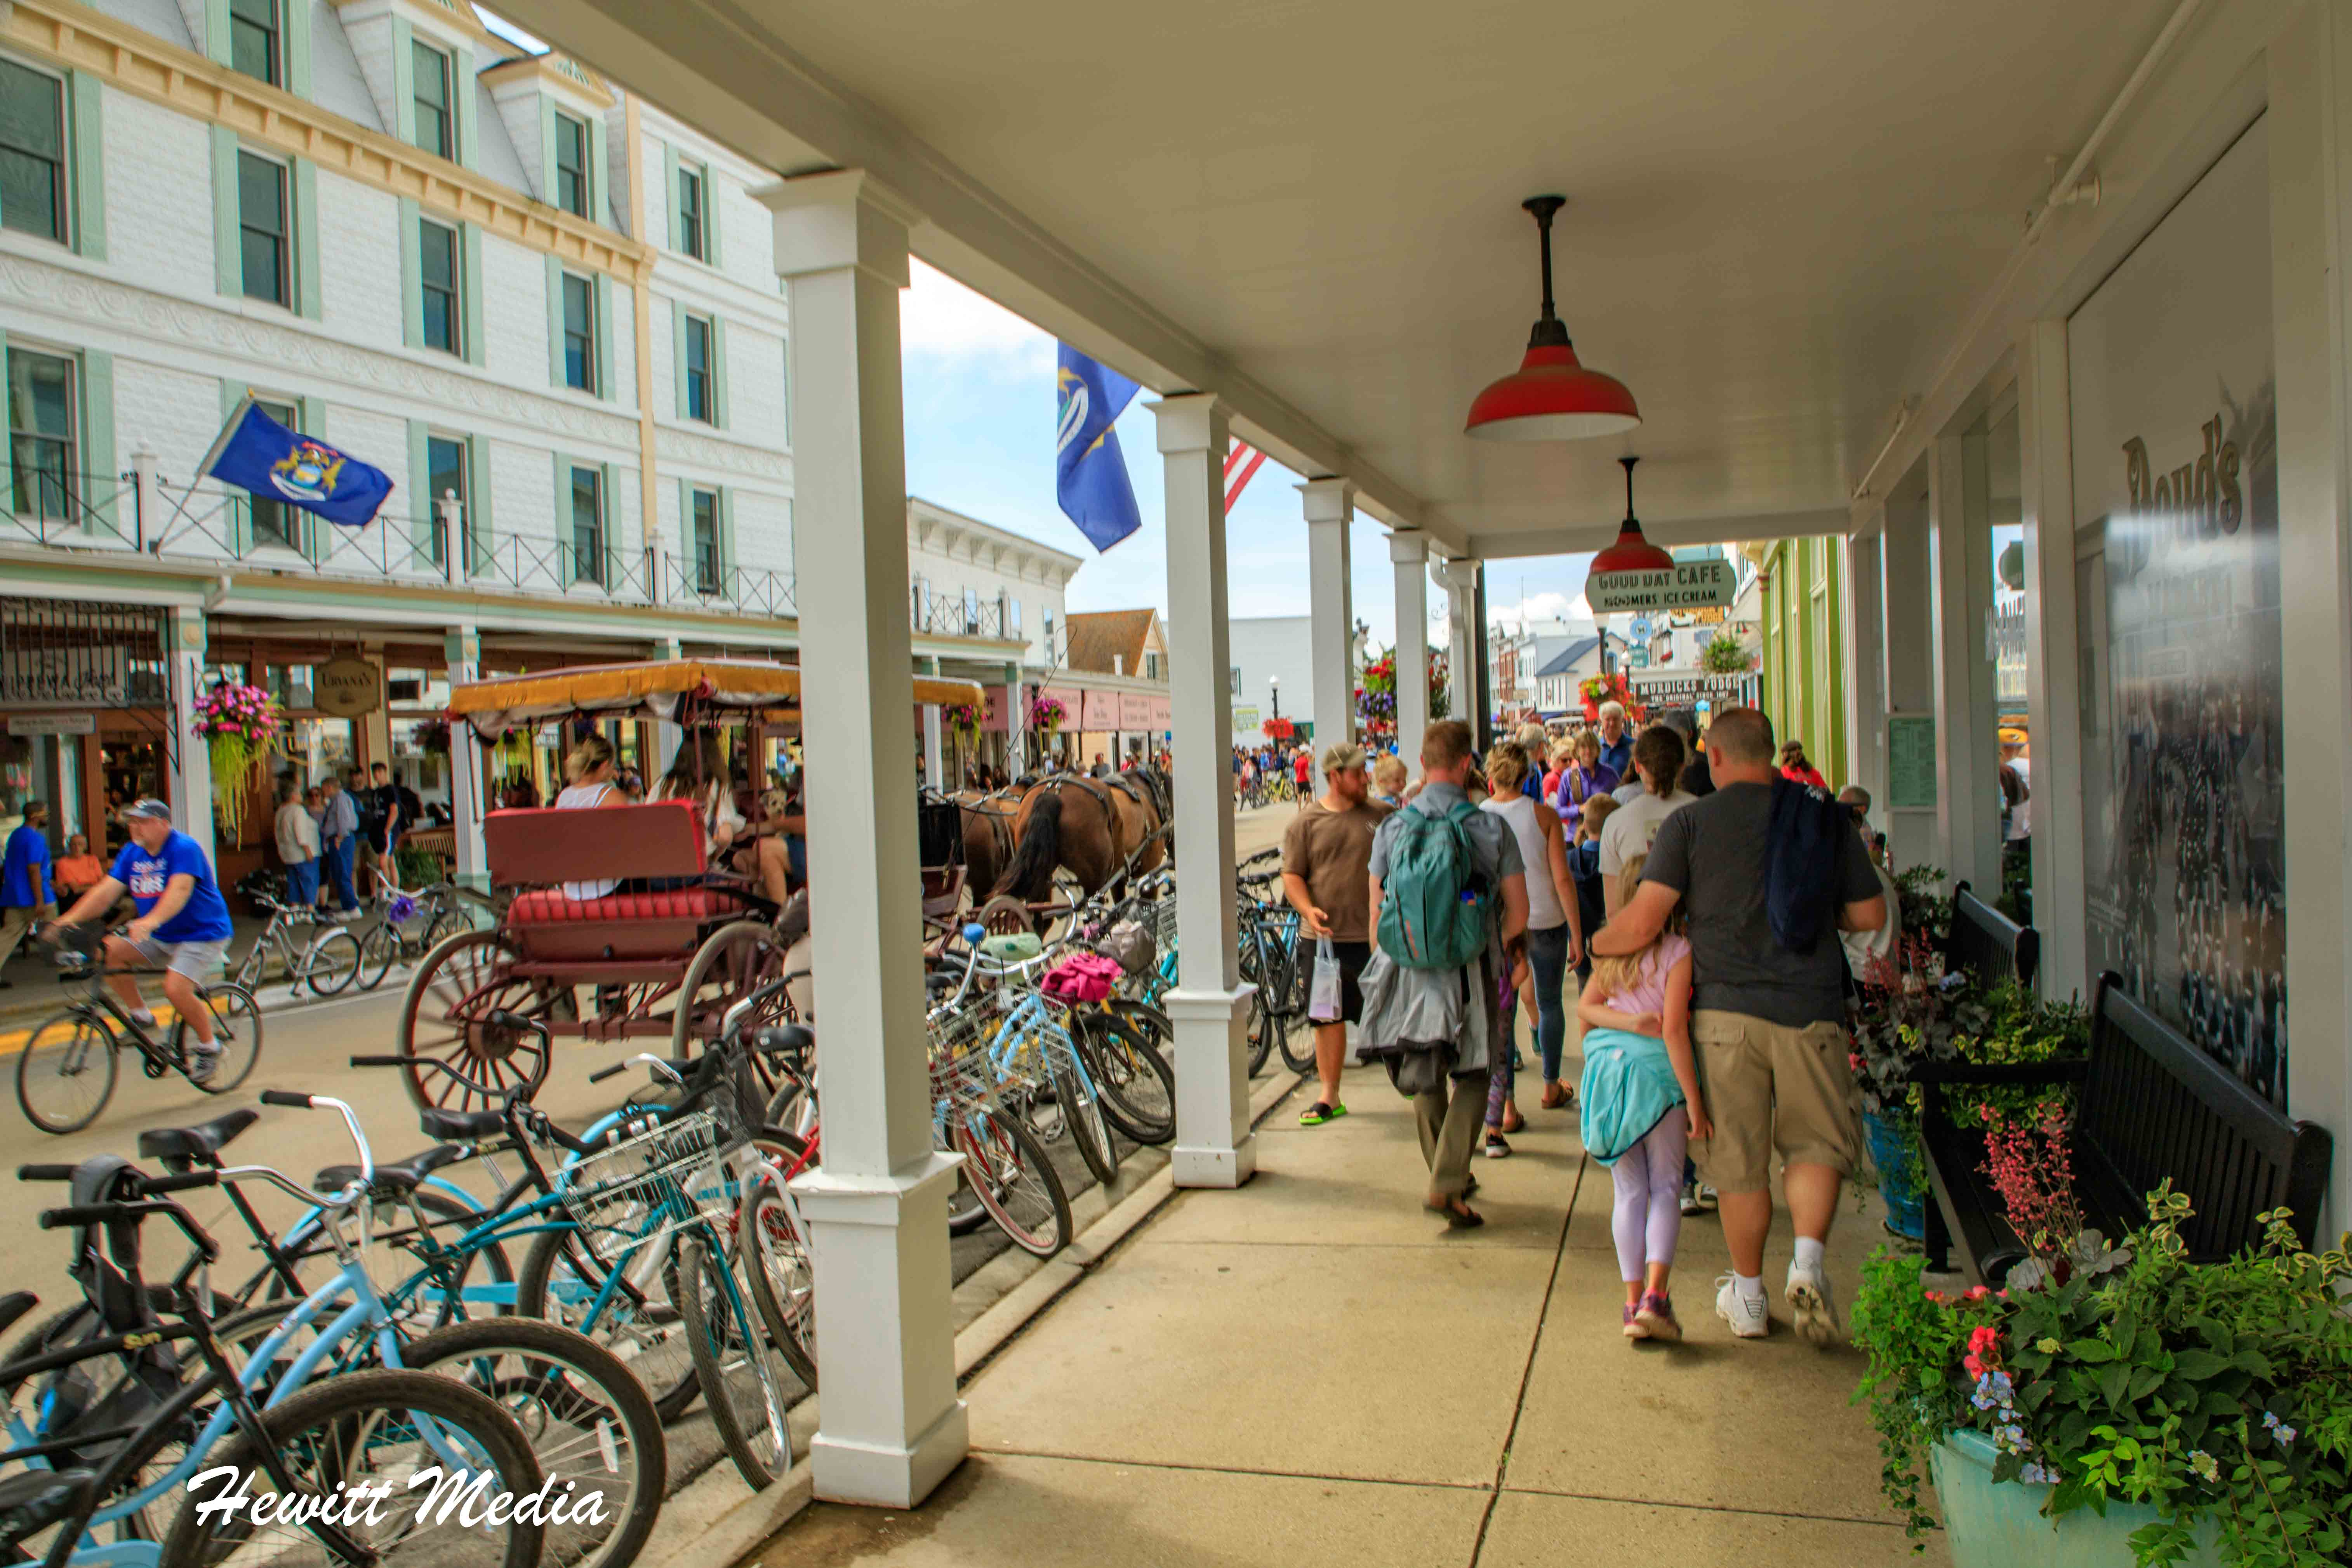 The Historic Downtown Mackinac Island